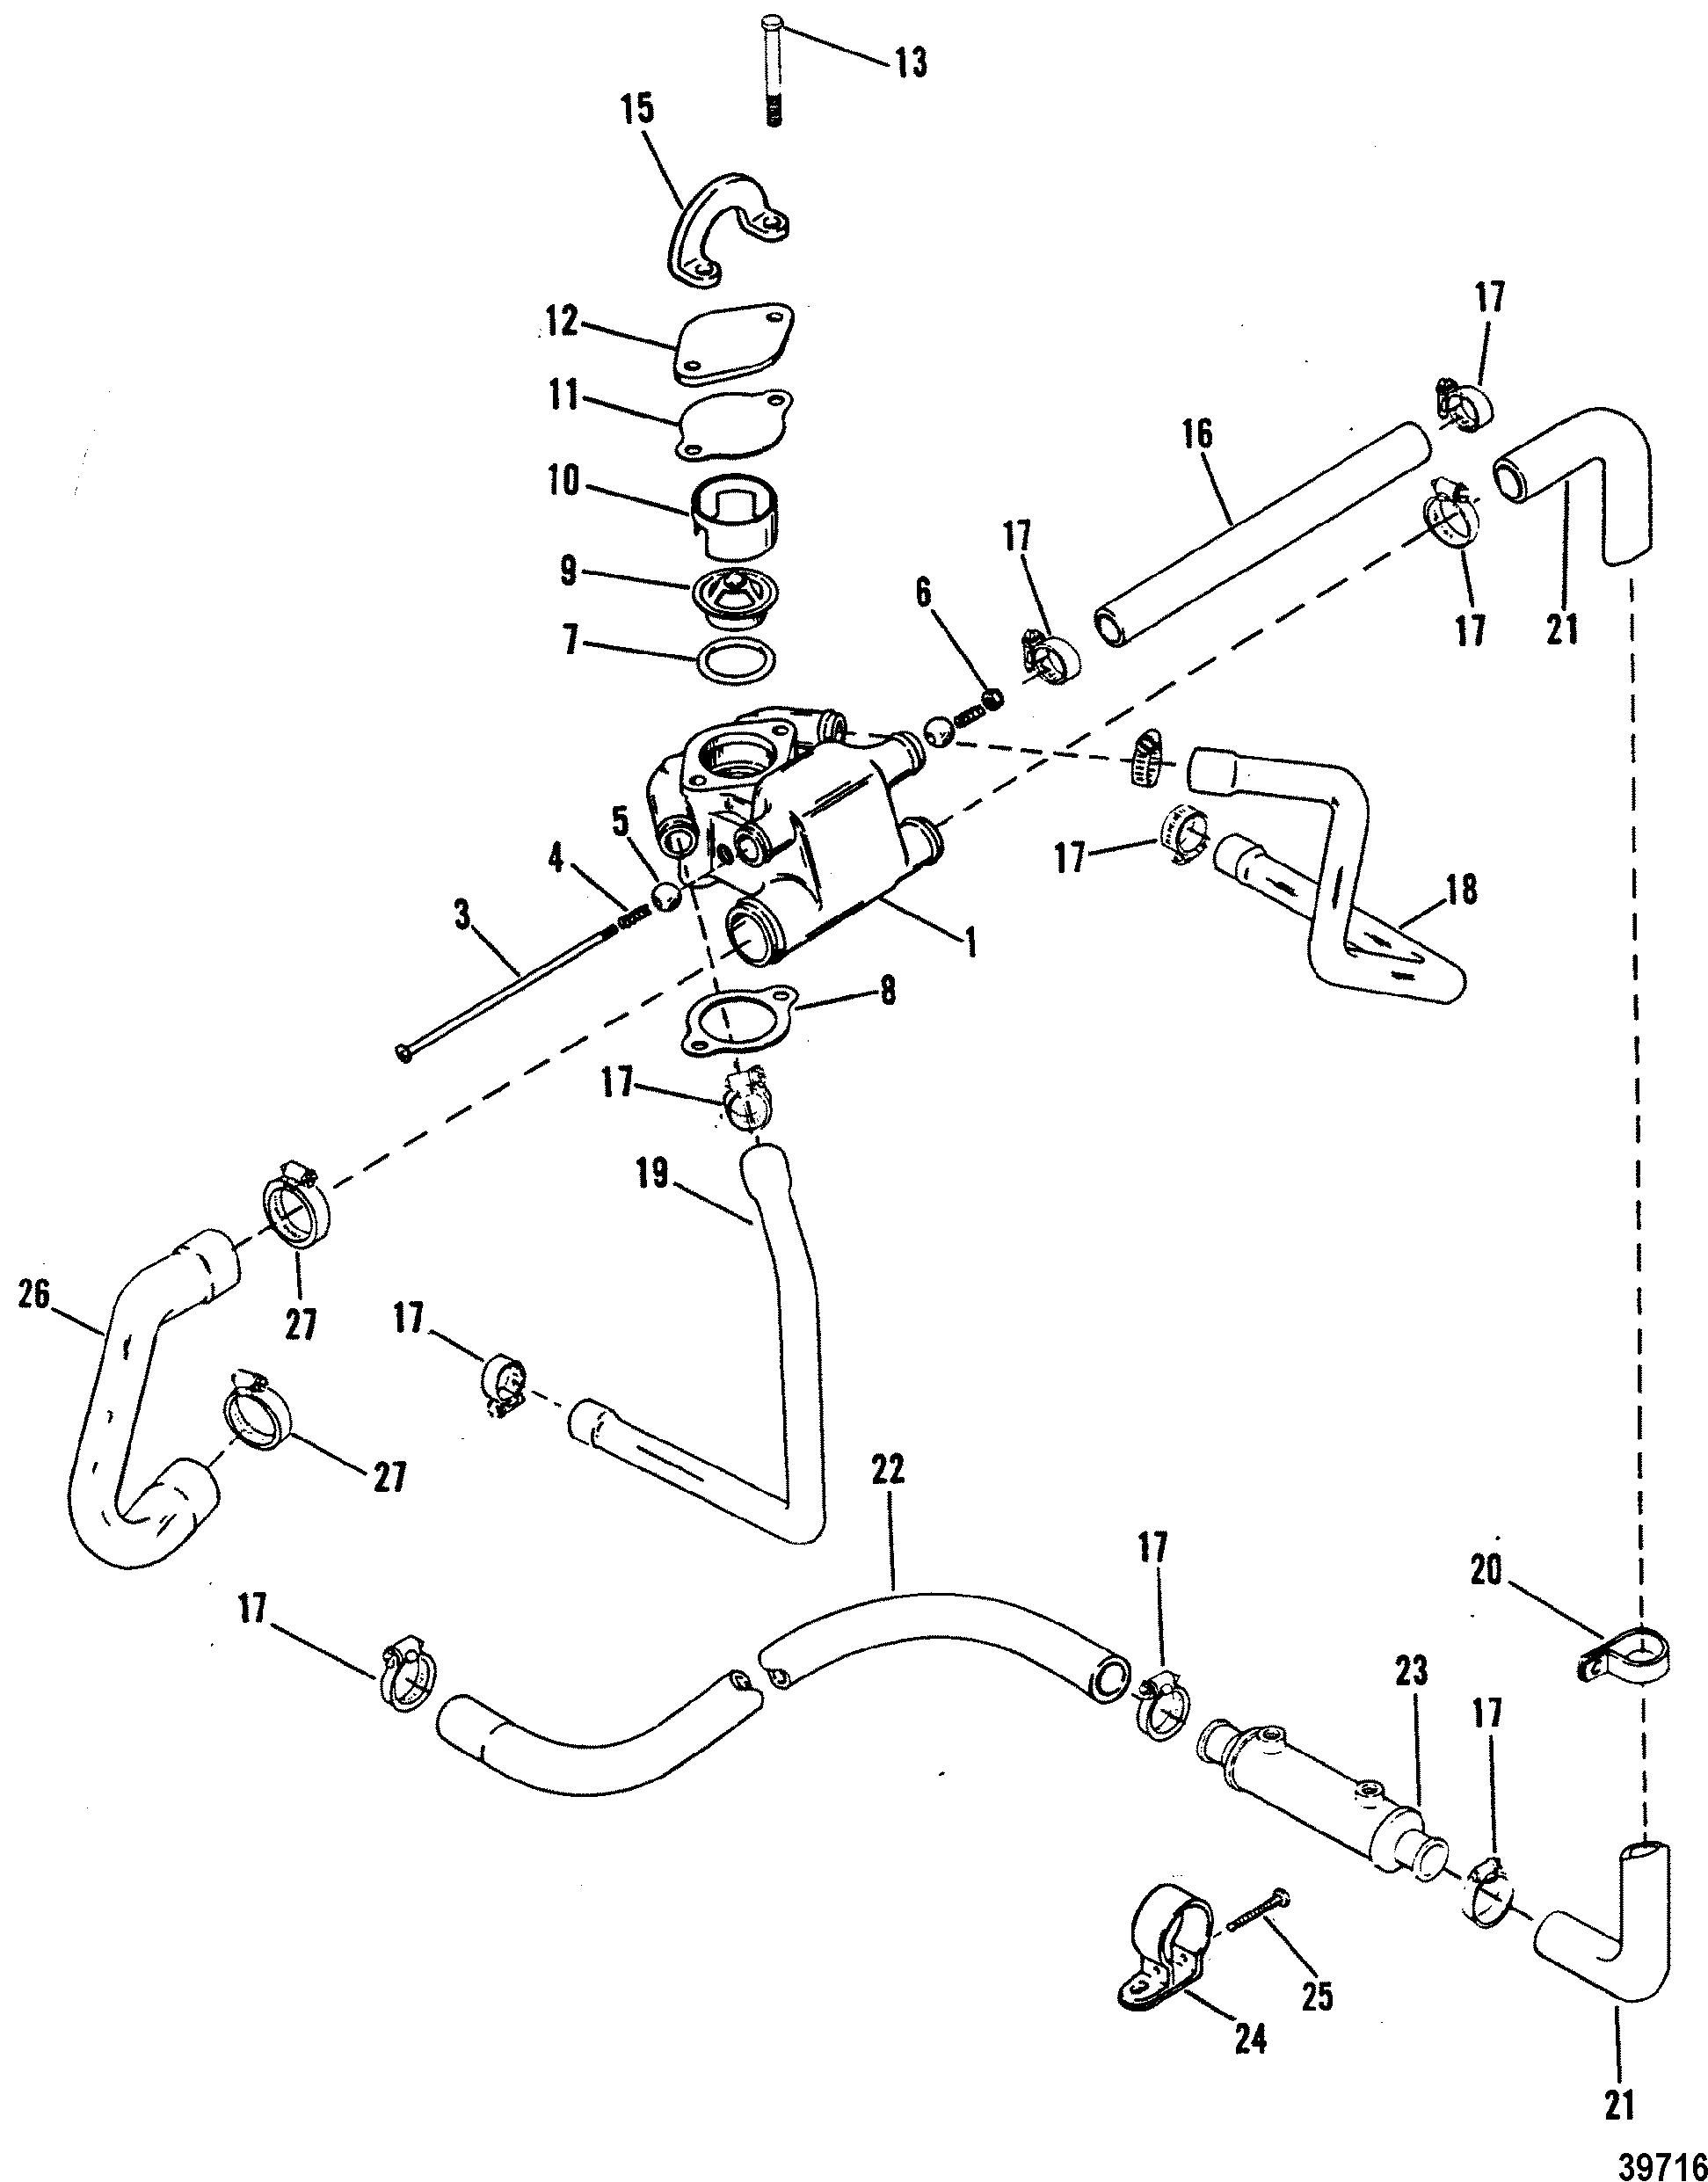 Sophisticated mercruir 5 0 engine diagram ideas best image wire